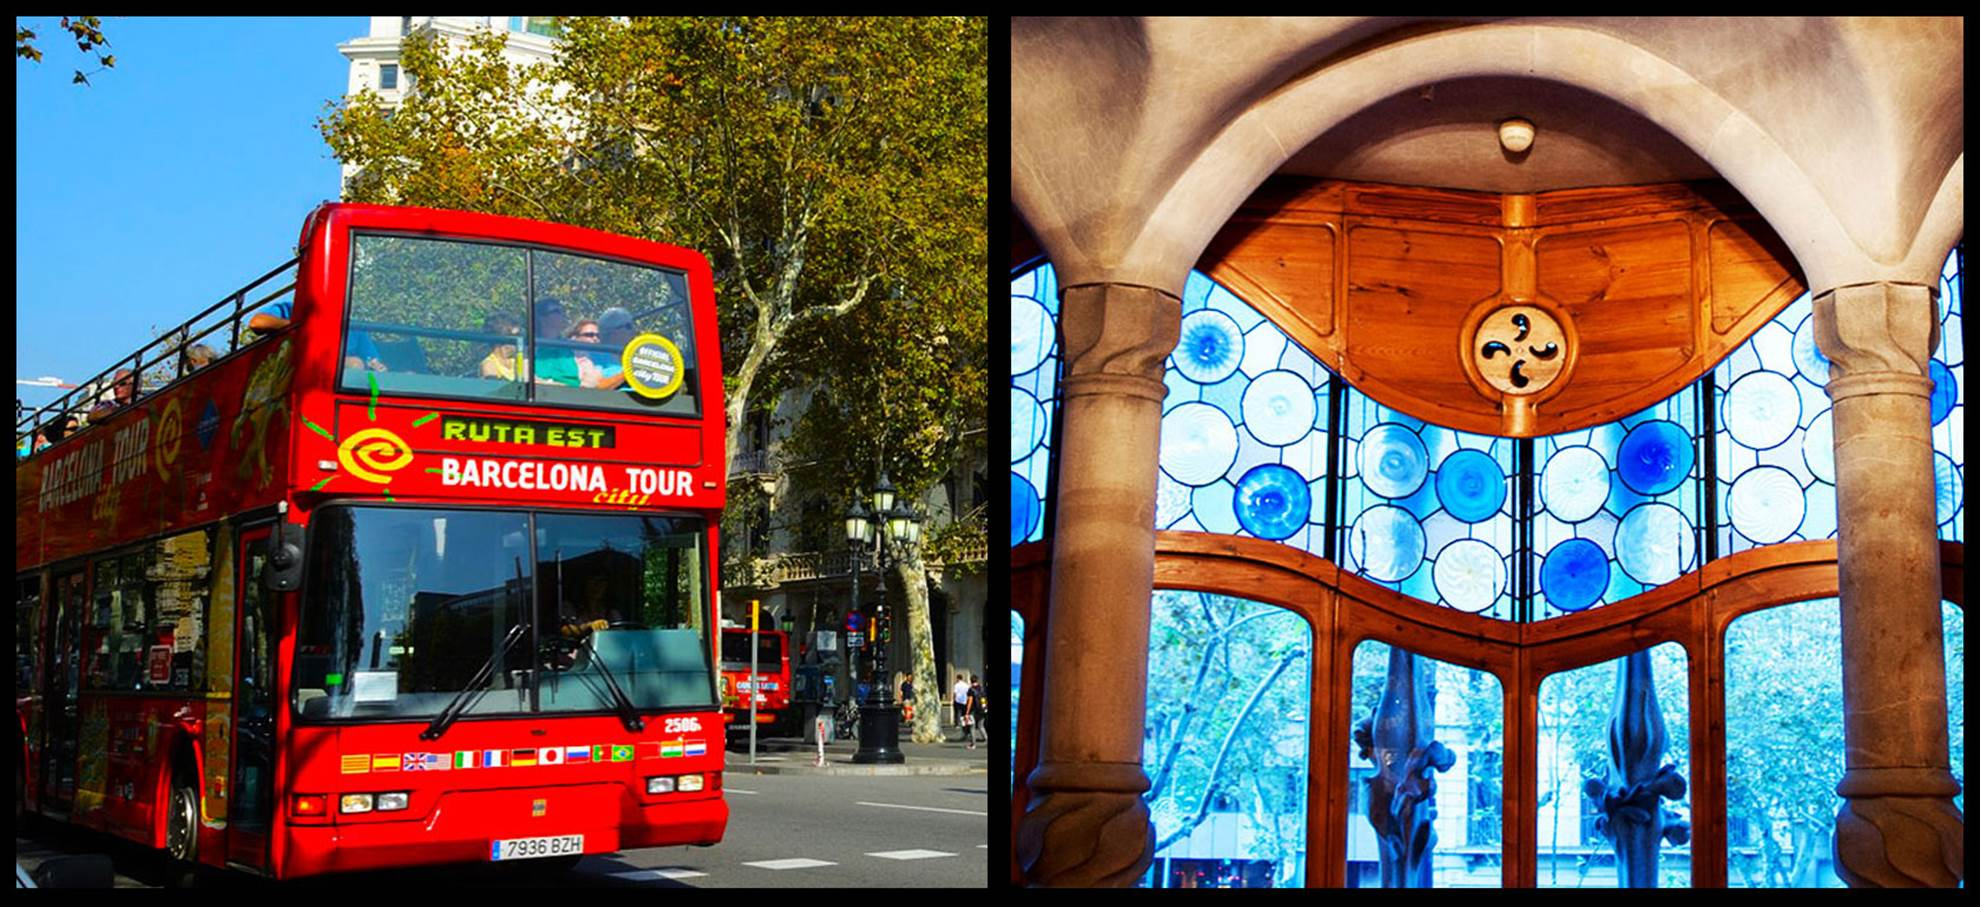 Casa Batllo & Hop on Hop off Bus